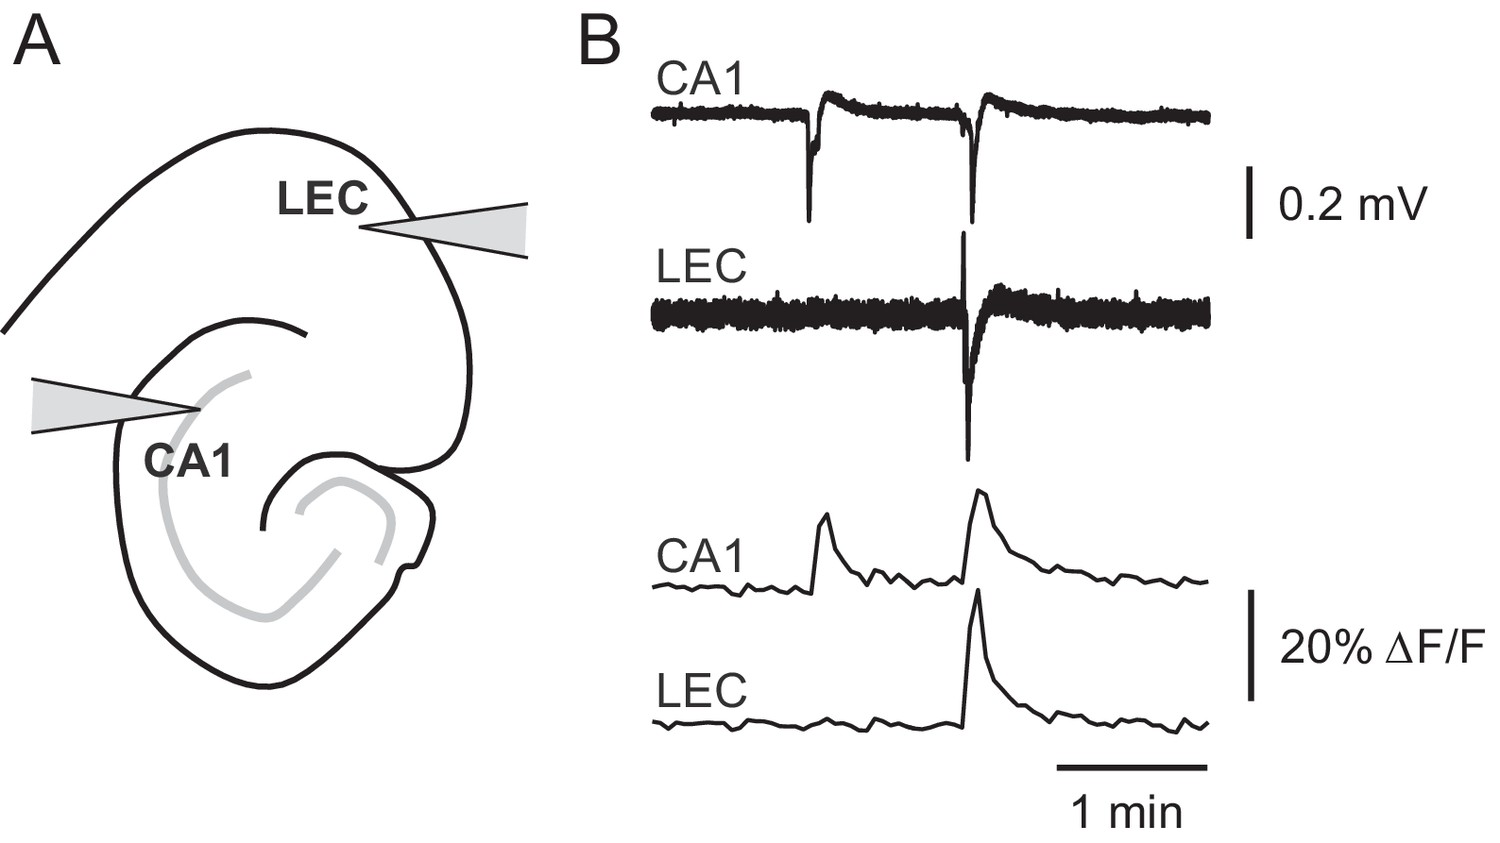 hight resolution of picrotoxin triggered changes in gcamp6f fluorescence intensity correspond to stereotypical epileptiform field potentials